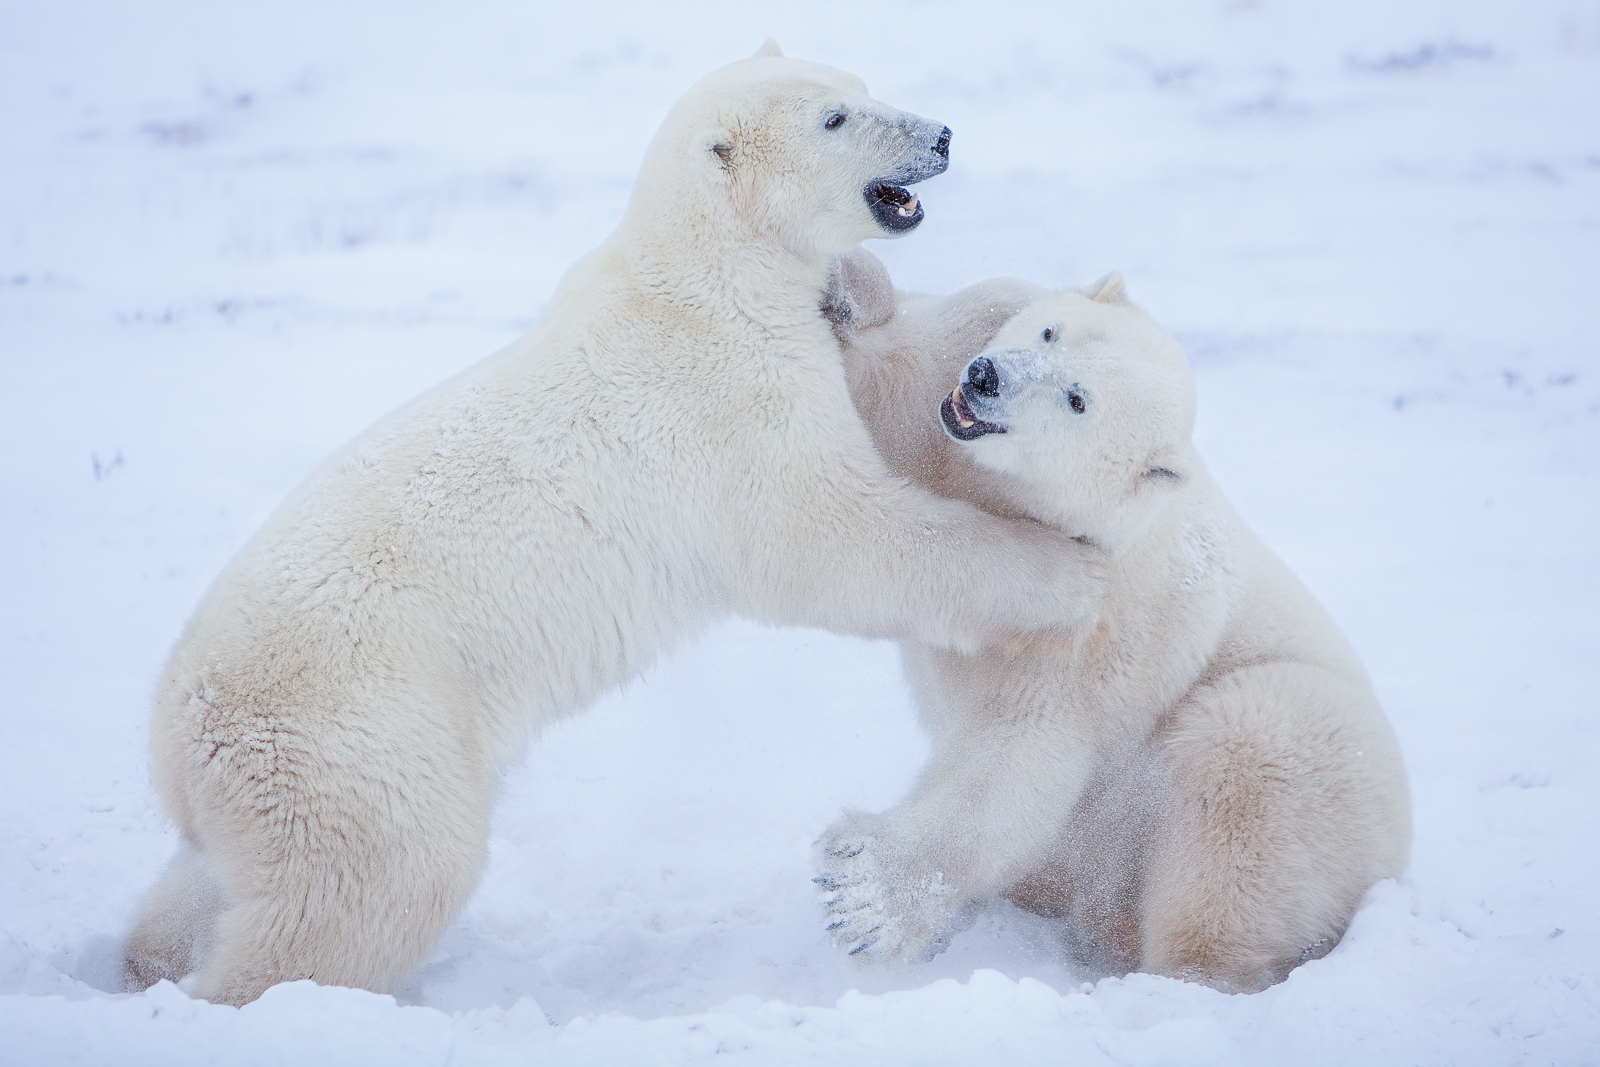 Sibs at Play,Fighting,Polar bear,Sparring,Wildlife,Winter,Manitoba, Canada,Ice, photo